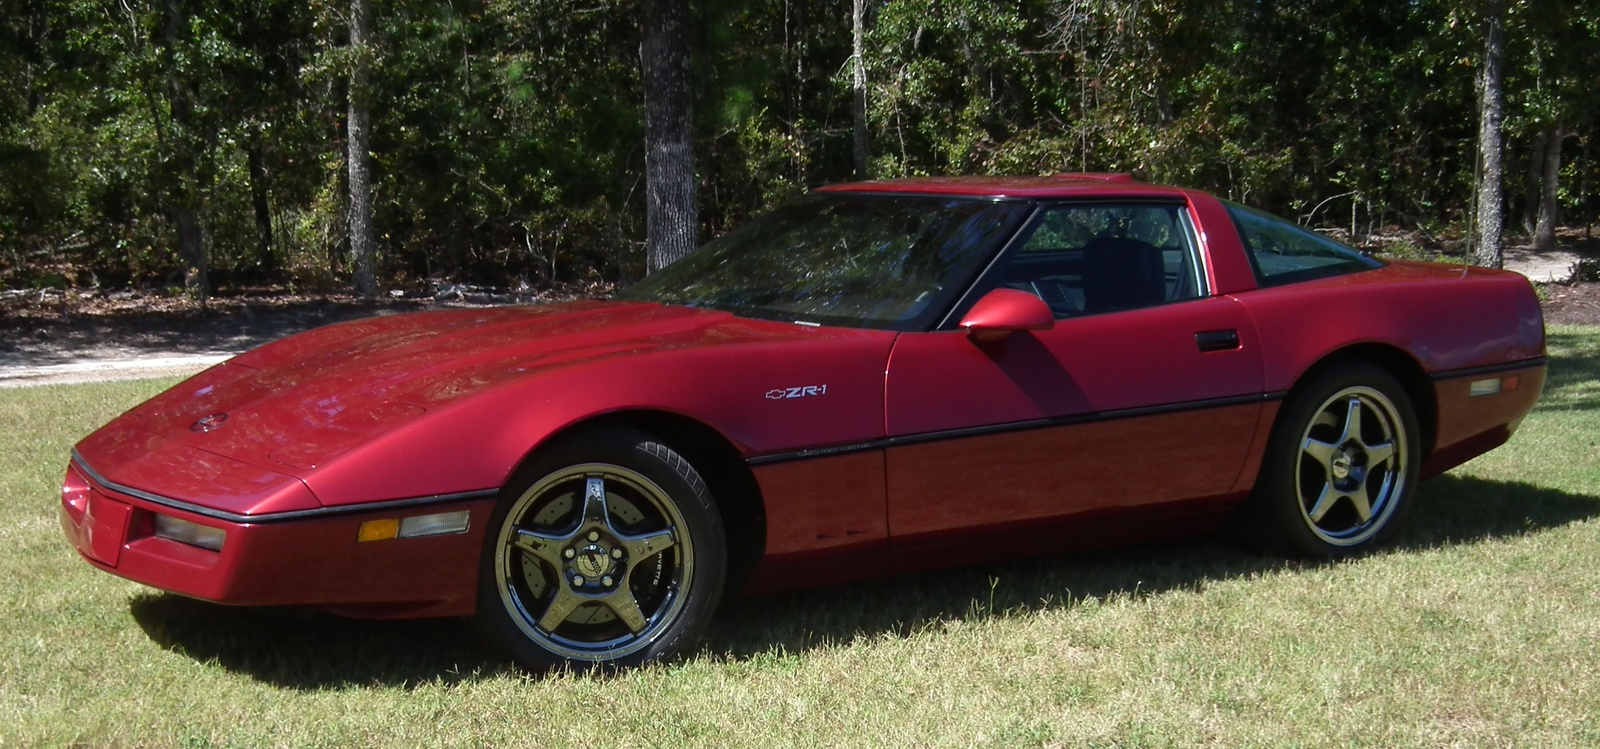 Used Chevrolet Corvette For Sale  Cargurus